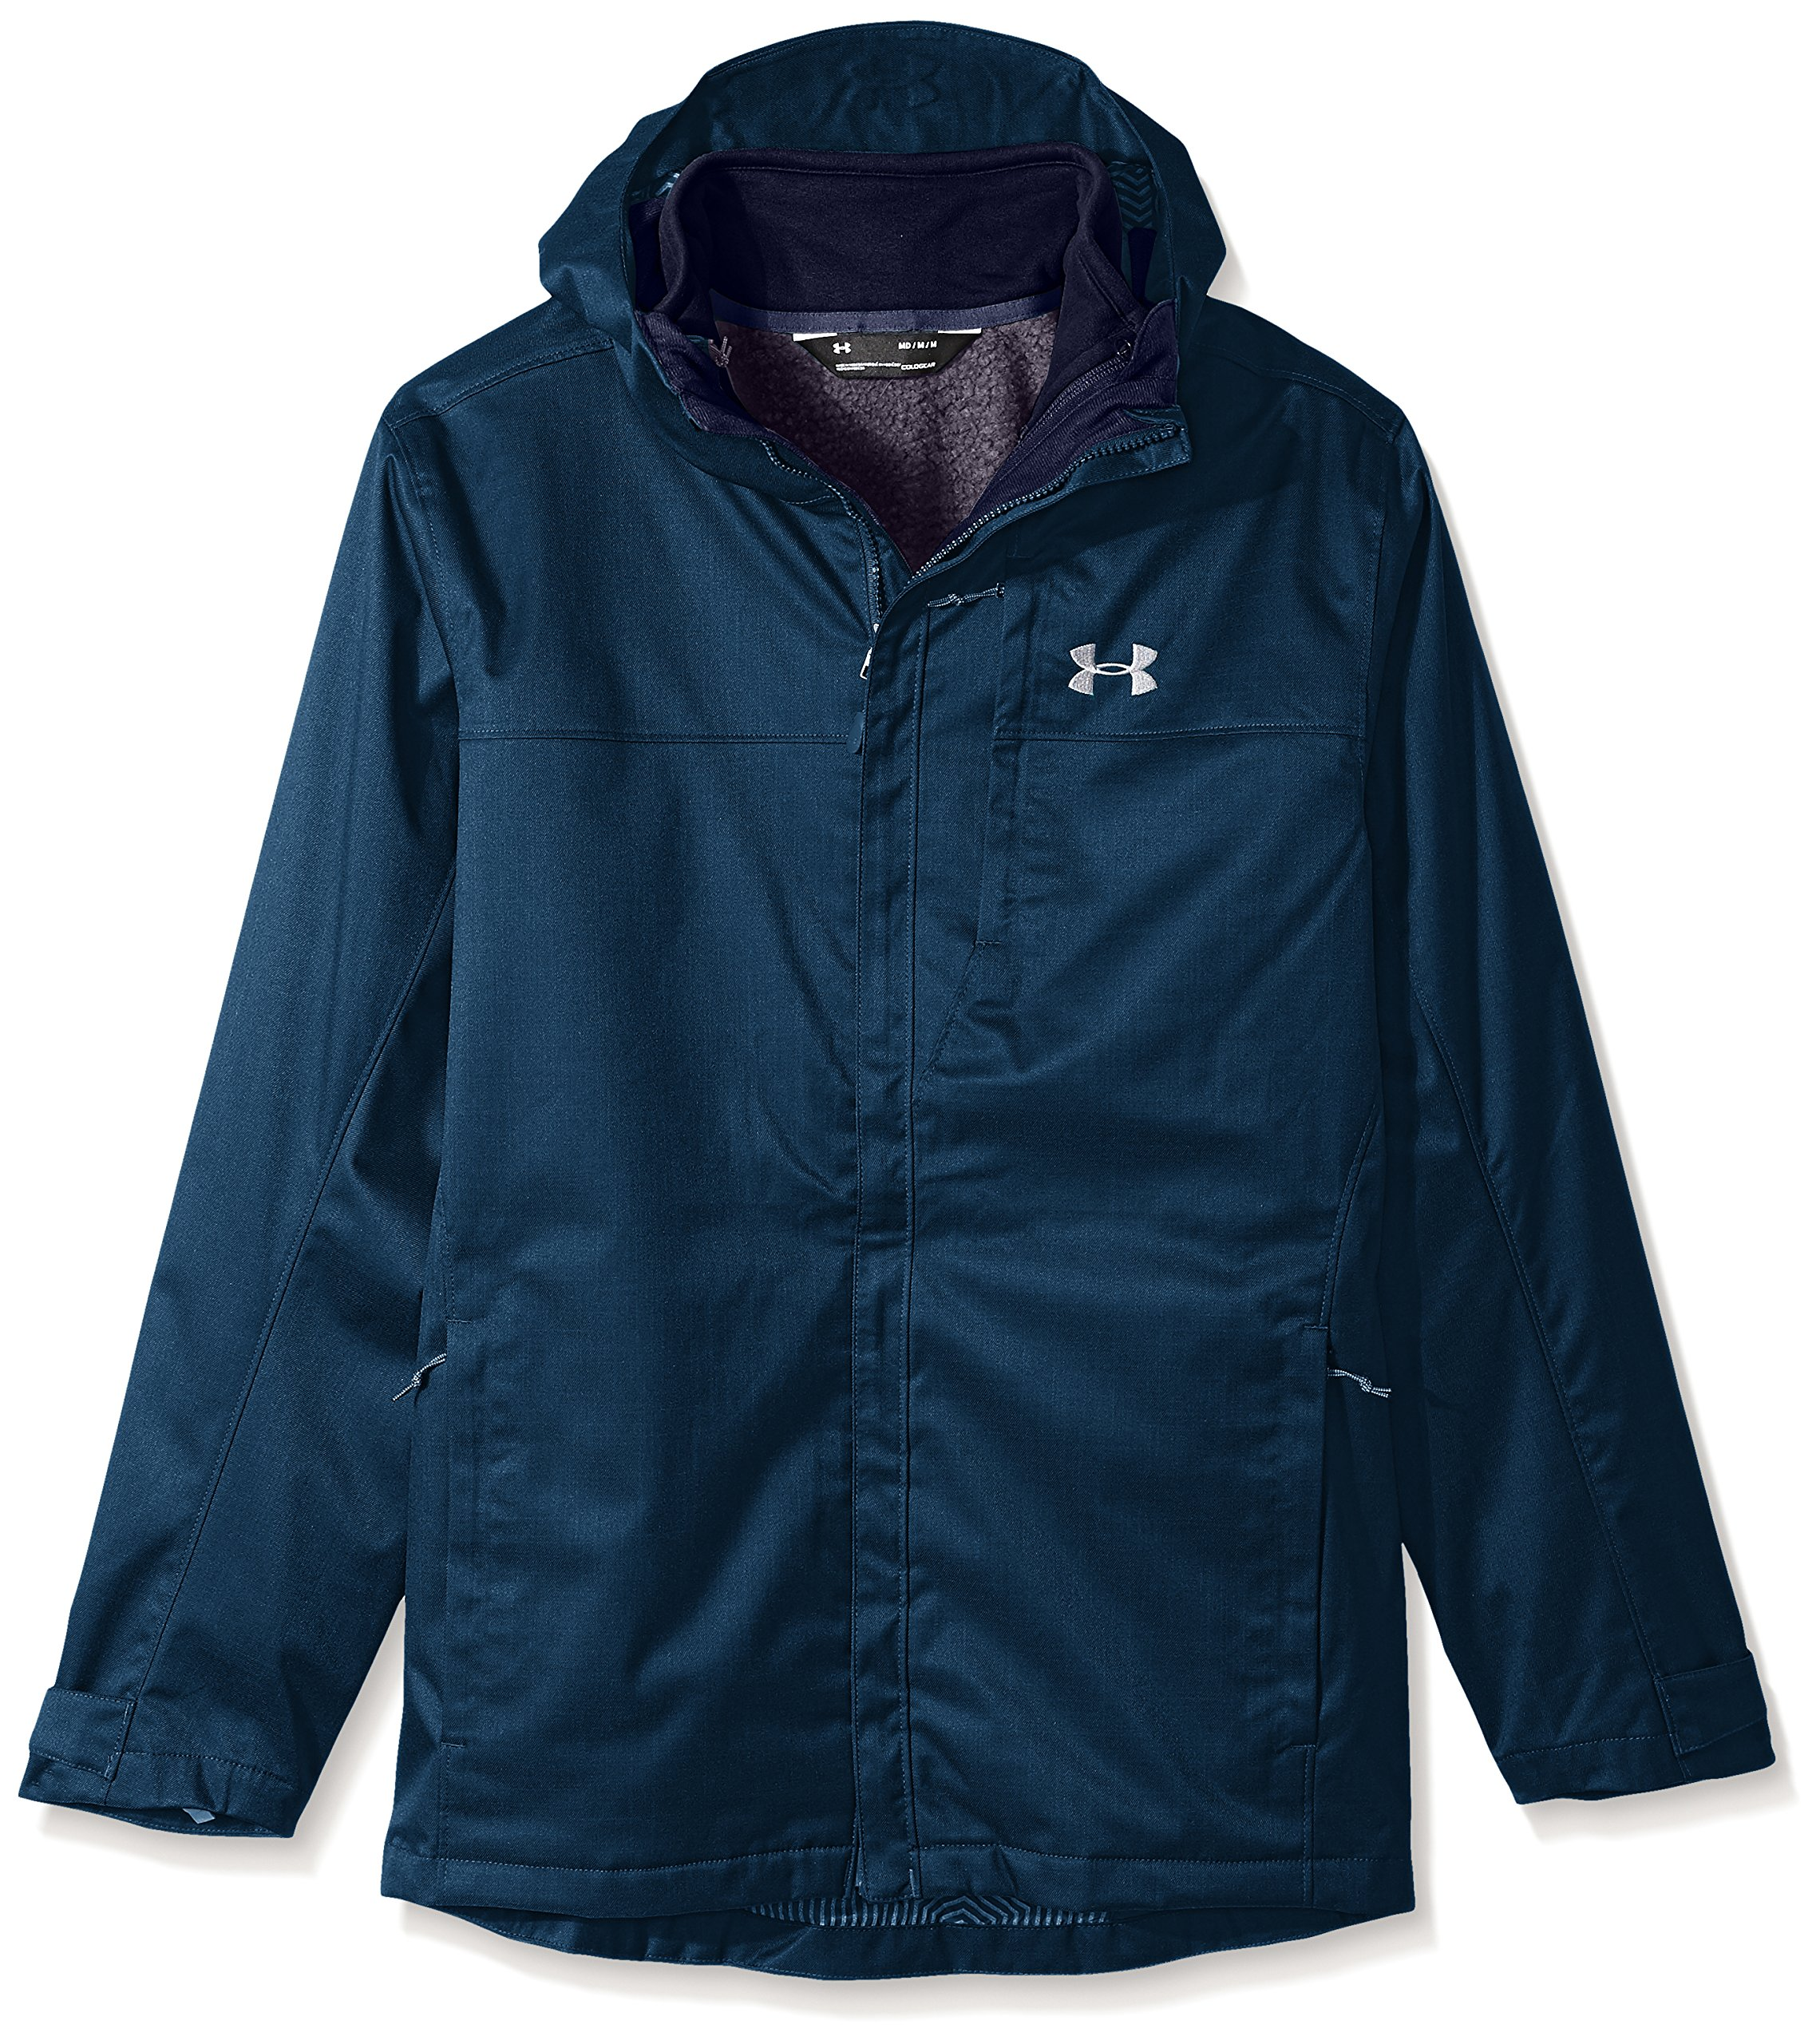 Under Armour ColdGear Infrared Porter 3-in-1 Jacket - Men's by Under Armour